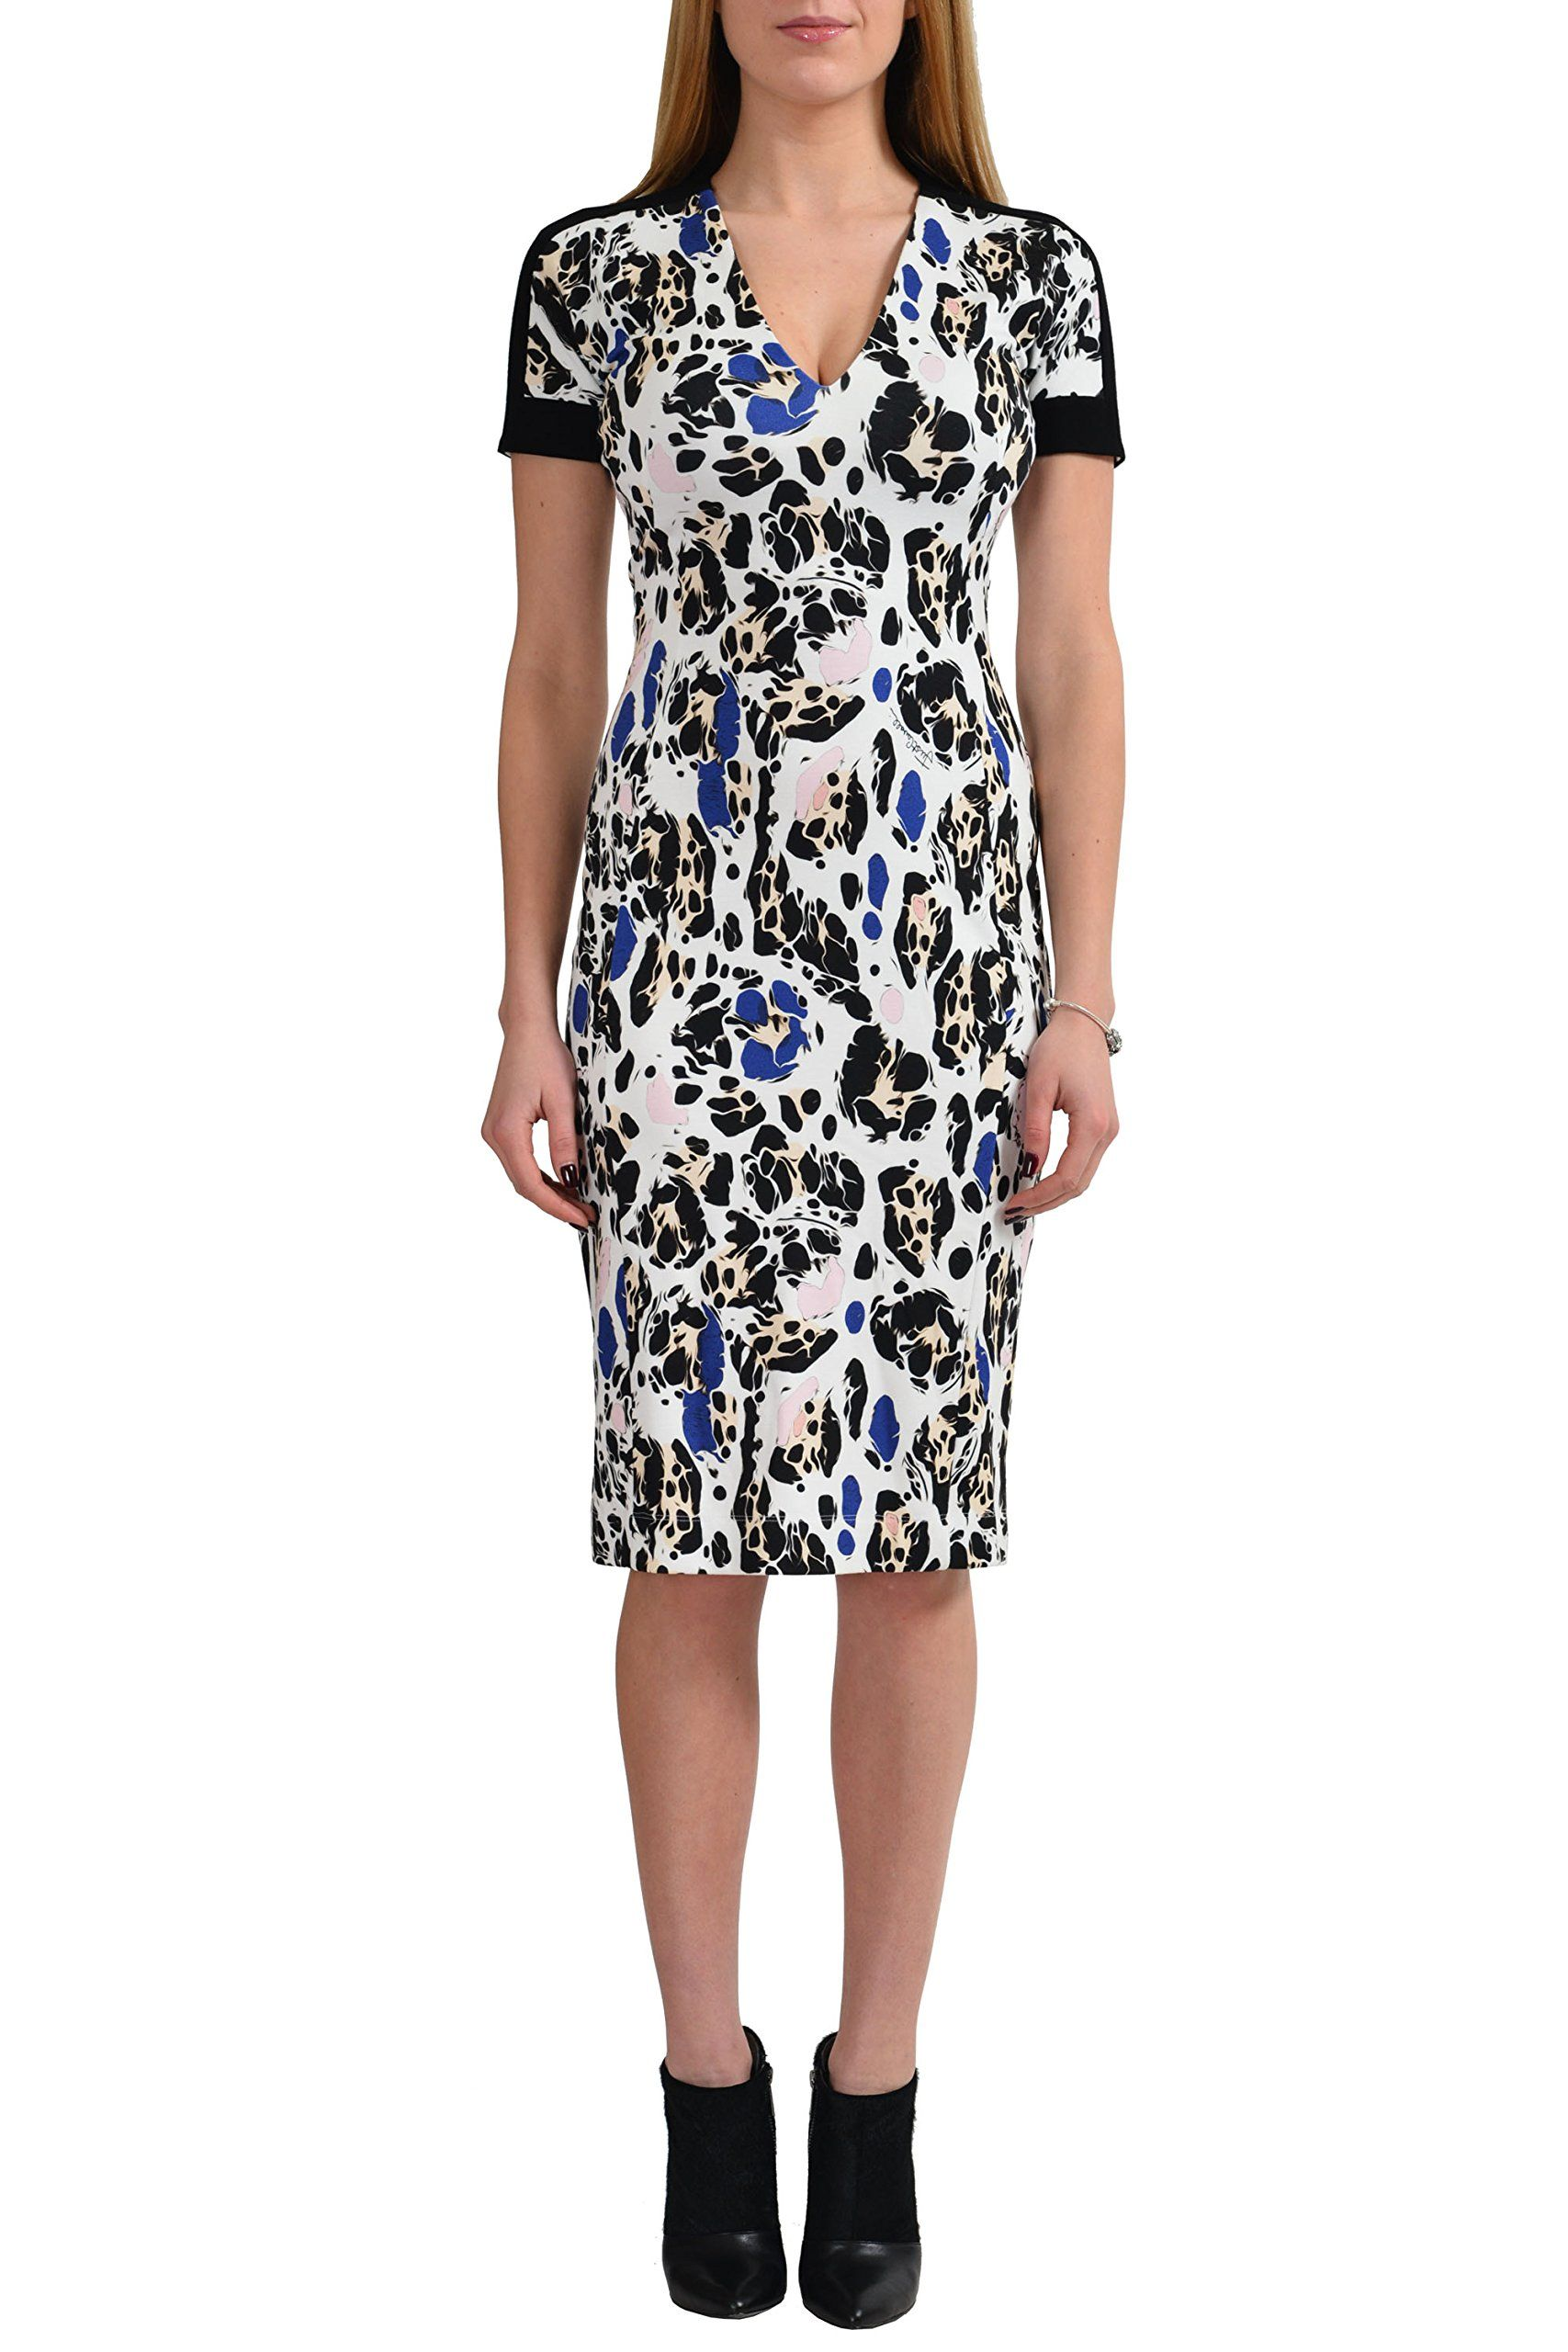 """Just Cavalli Women's Multi-Color Short Sleeve Bodycon Dress US US 4 IT 40. Material: 93% Rayon 7% Spandex. Made in Italy. Bust: 14"""". Length: 40""""."""